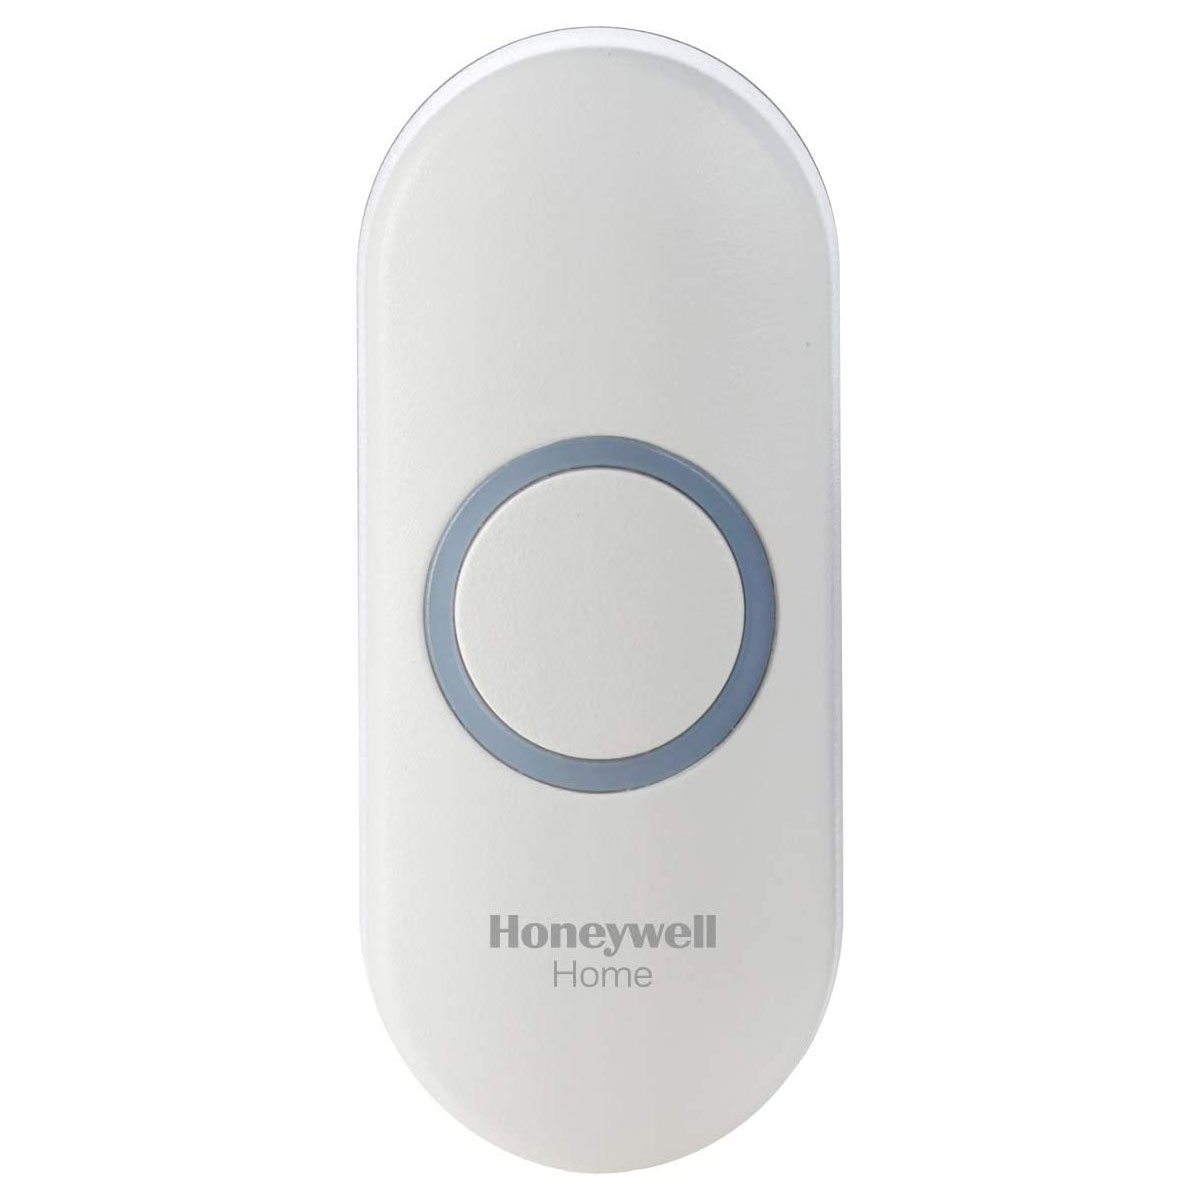 Honeywell Wireless Doorbell Push Button for Series 3, 5, 9 Honeywell Door Bells (White) - RPWL400W